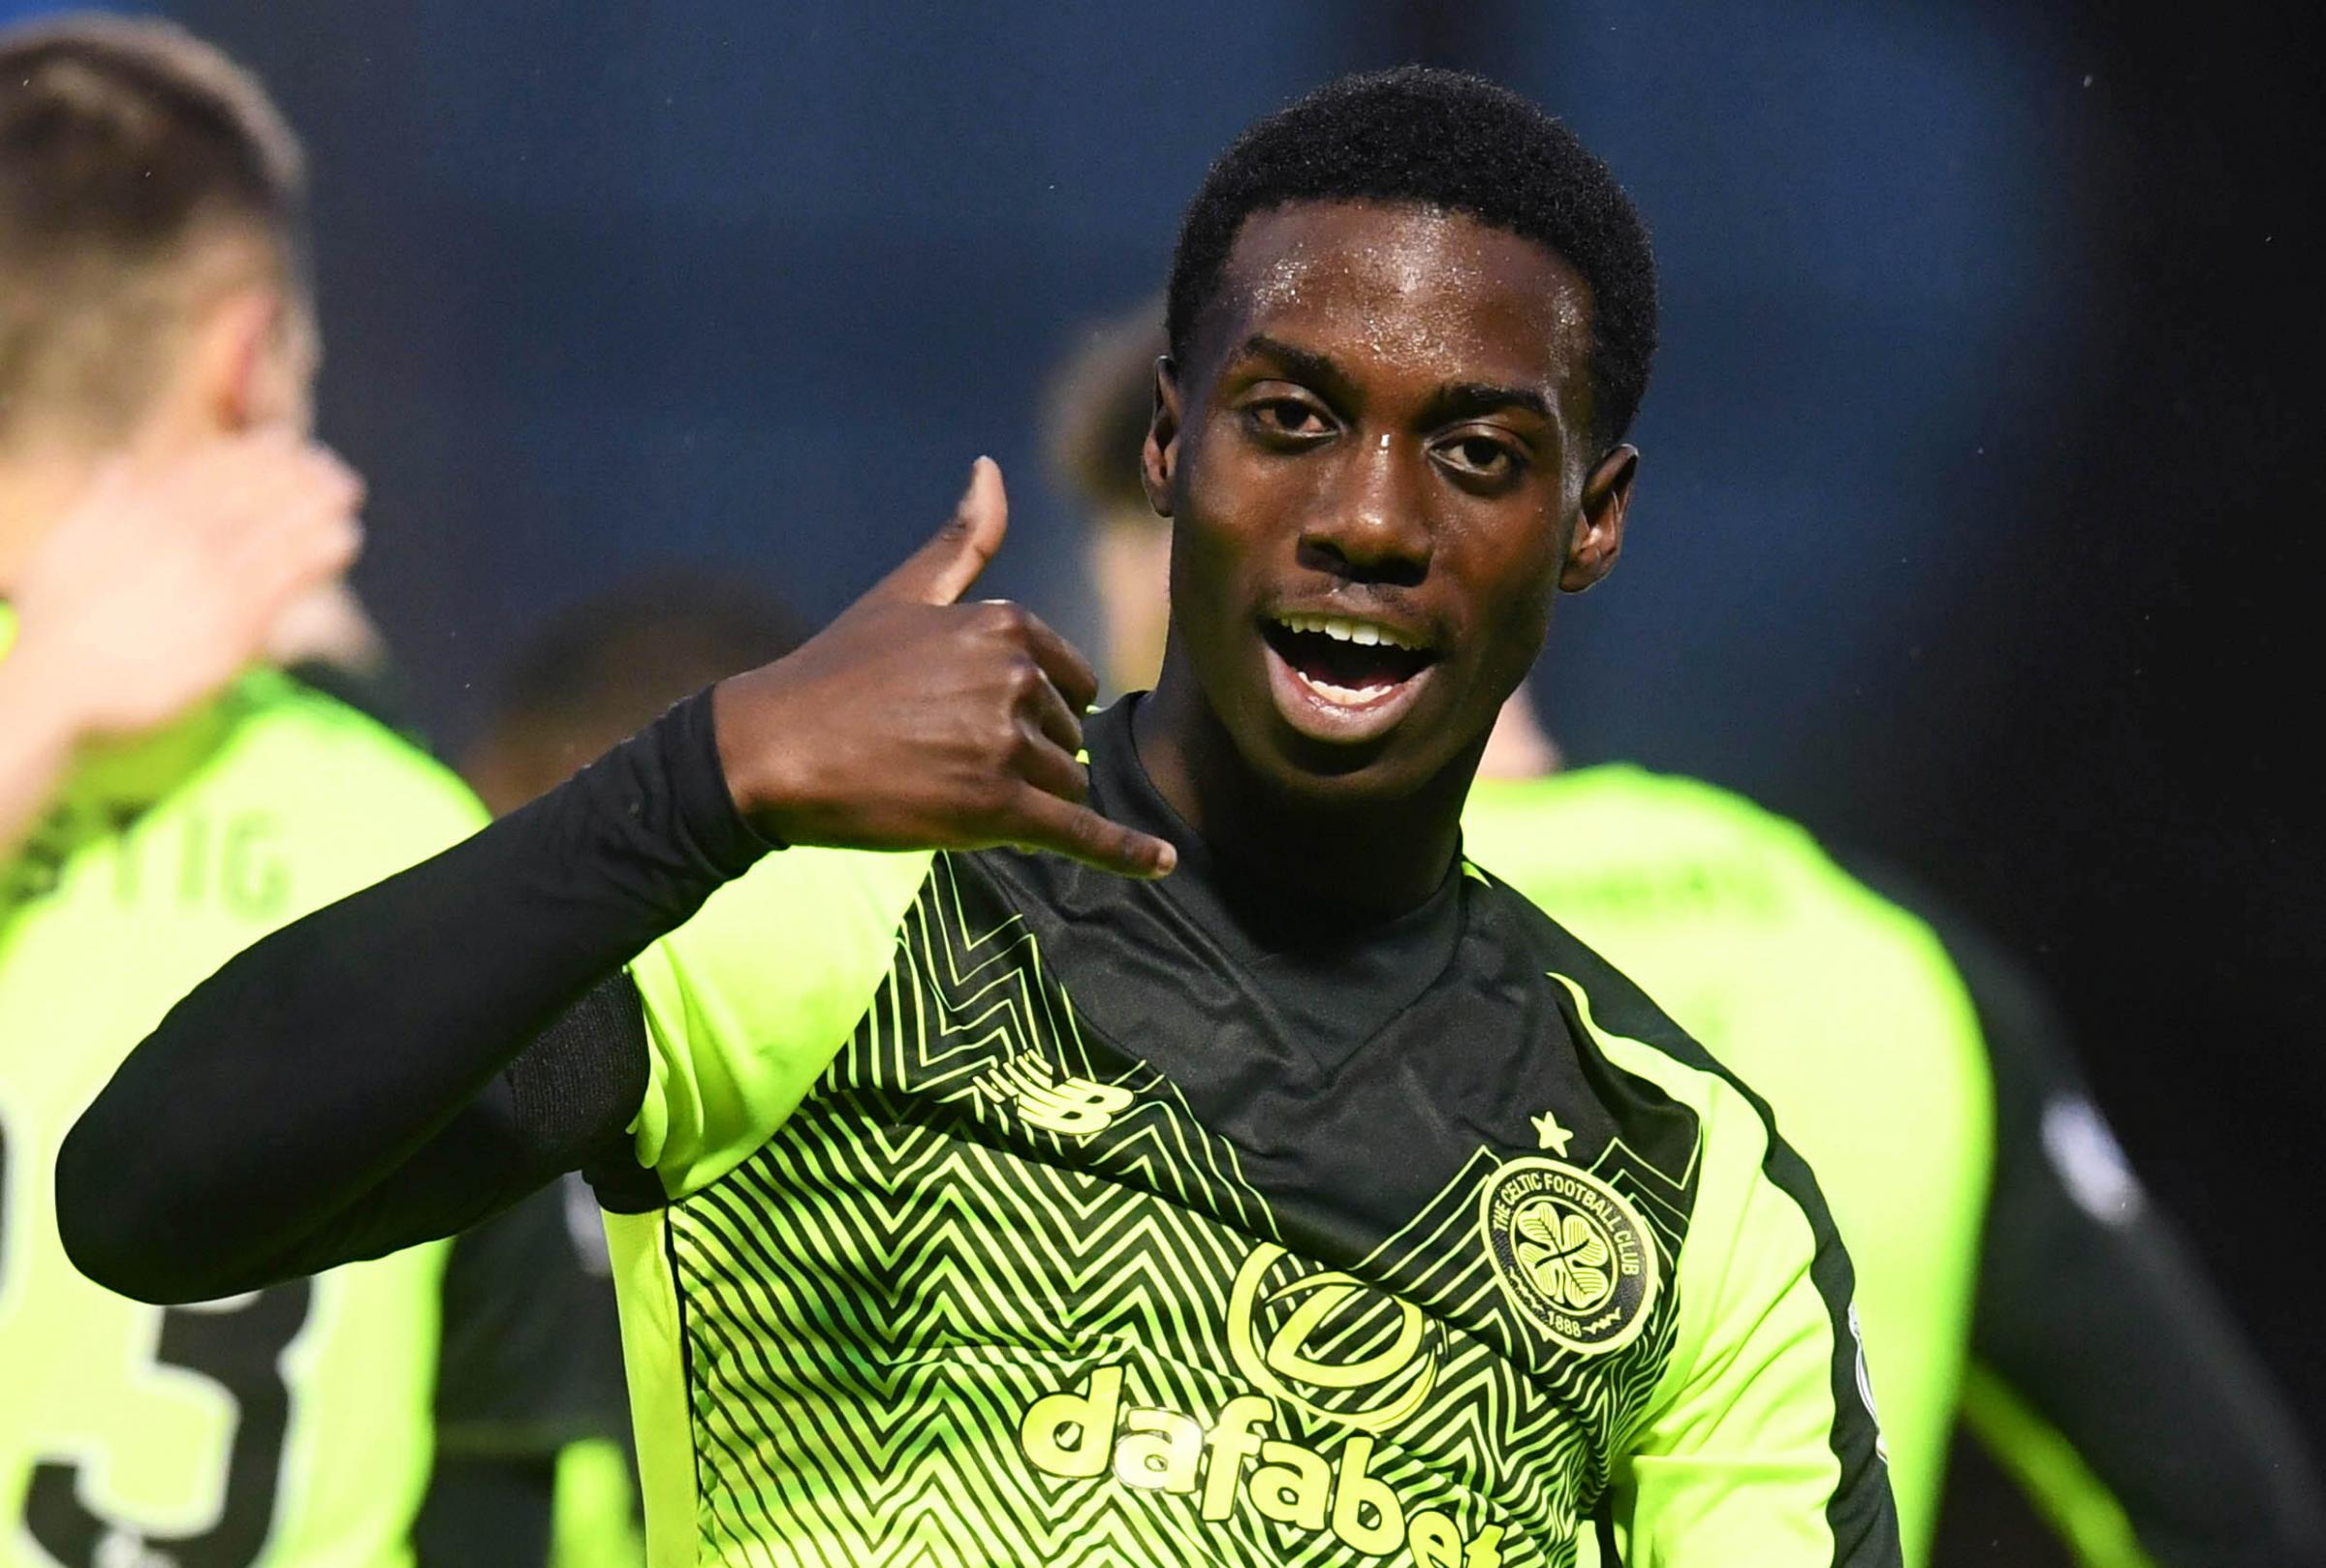 Celtic's PSG loanee Timothy Weah could star for the States